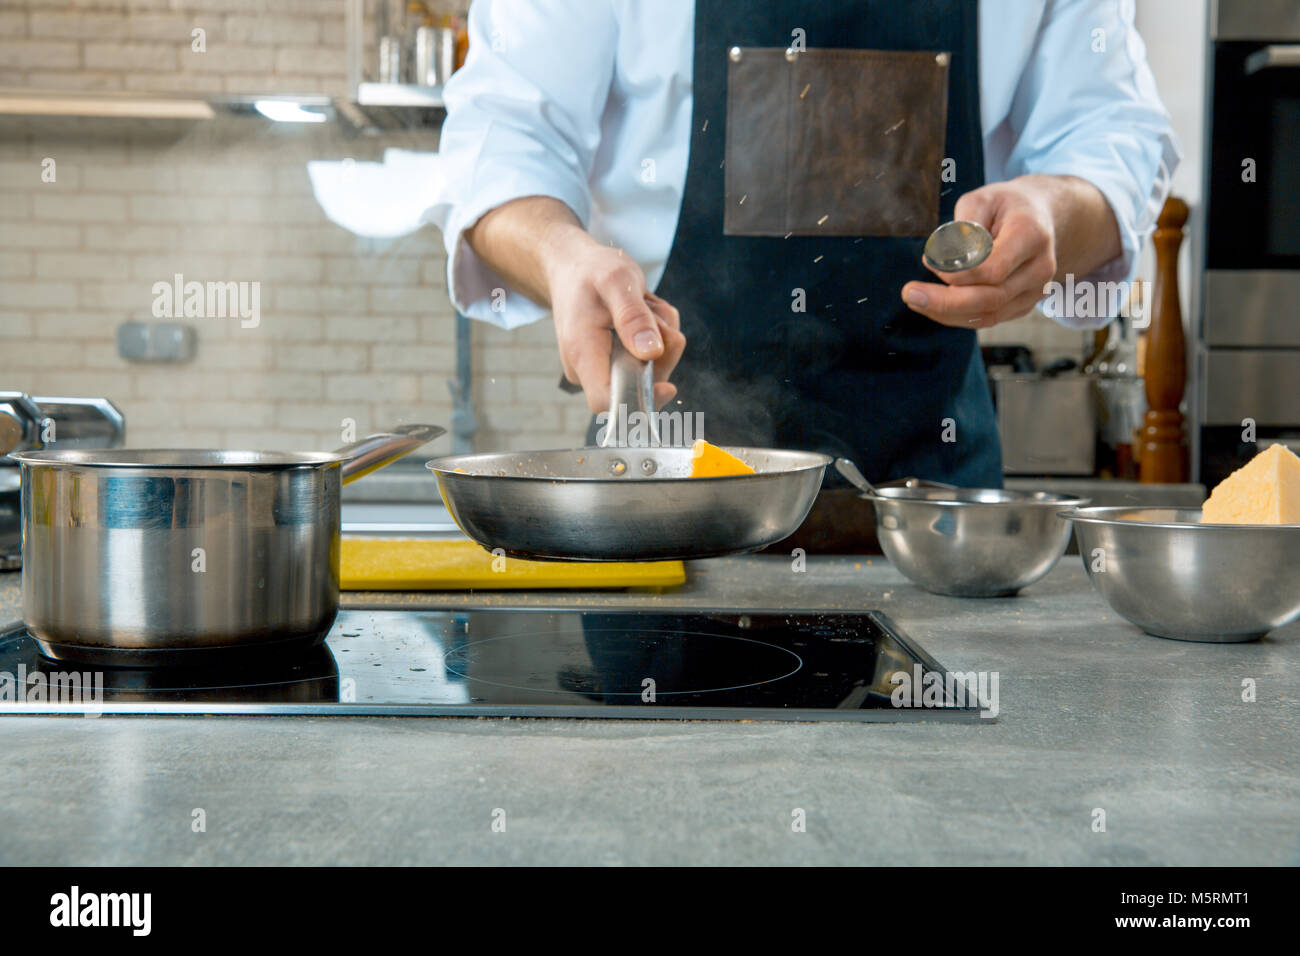 Mid section of chef preparing food in the kitchen of a restaurant. the chef fry food in a frying pan - Stock Image